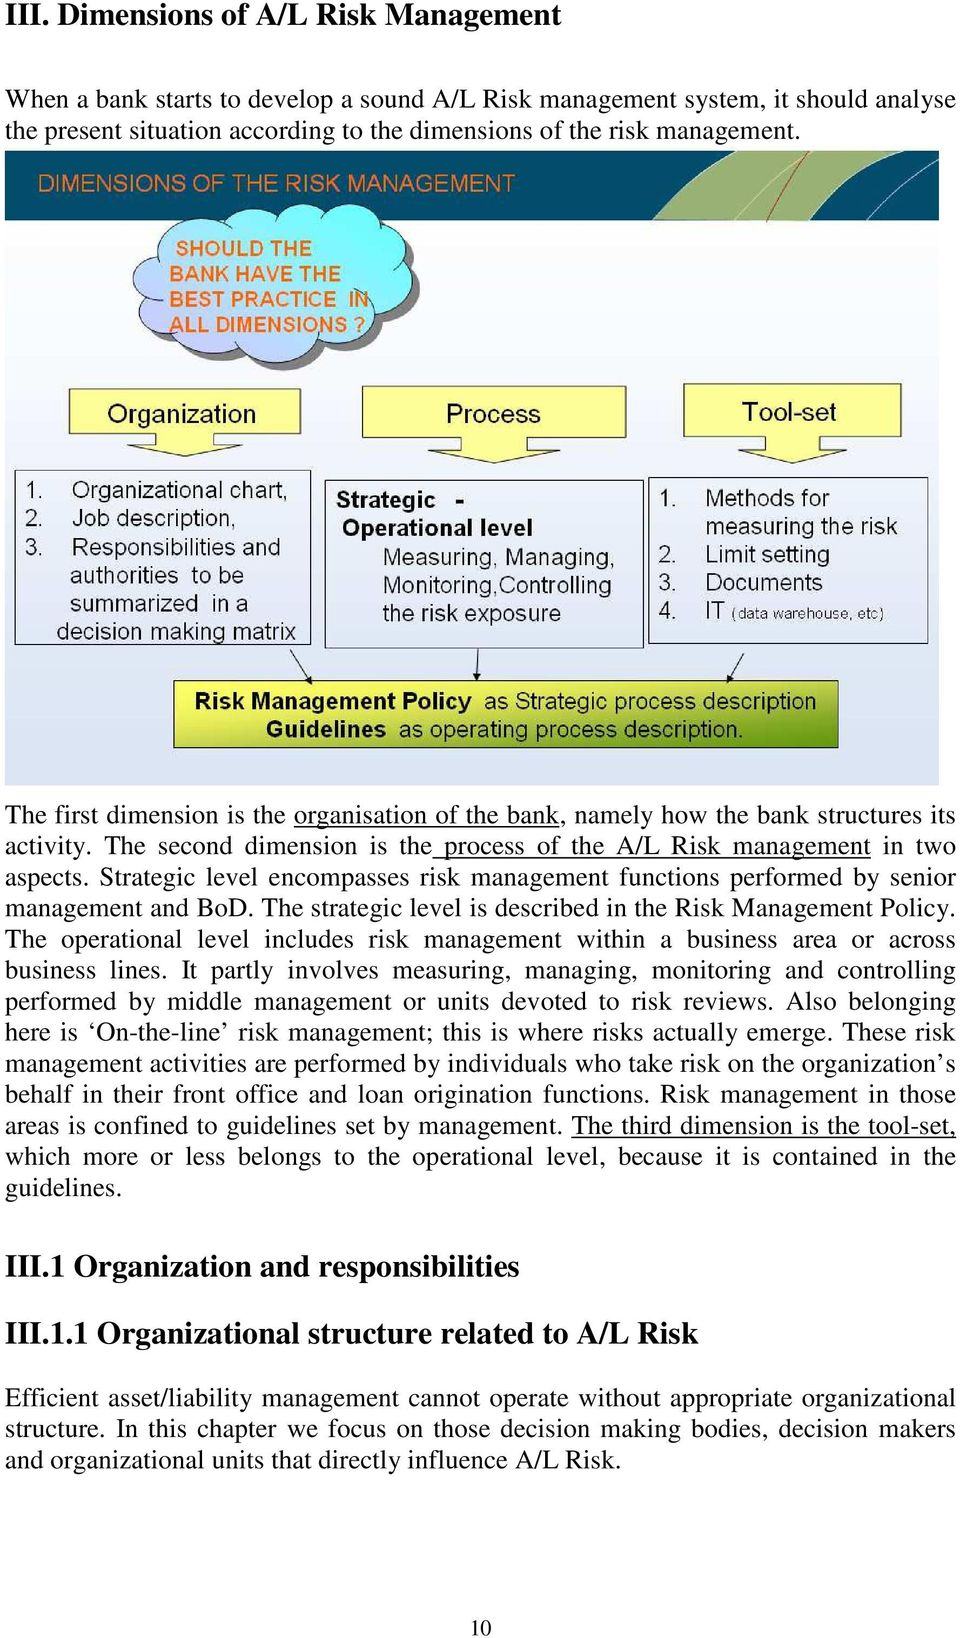 Strategic level encompasses risk management functions performed by senior management and BoD. The strategic level is described in the Risk Management Policy.